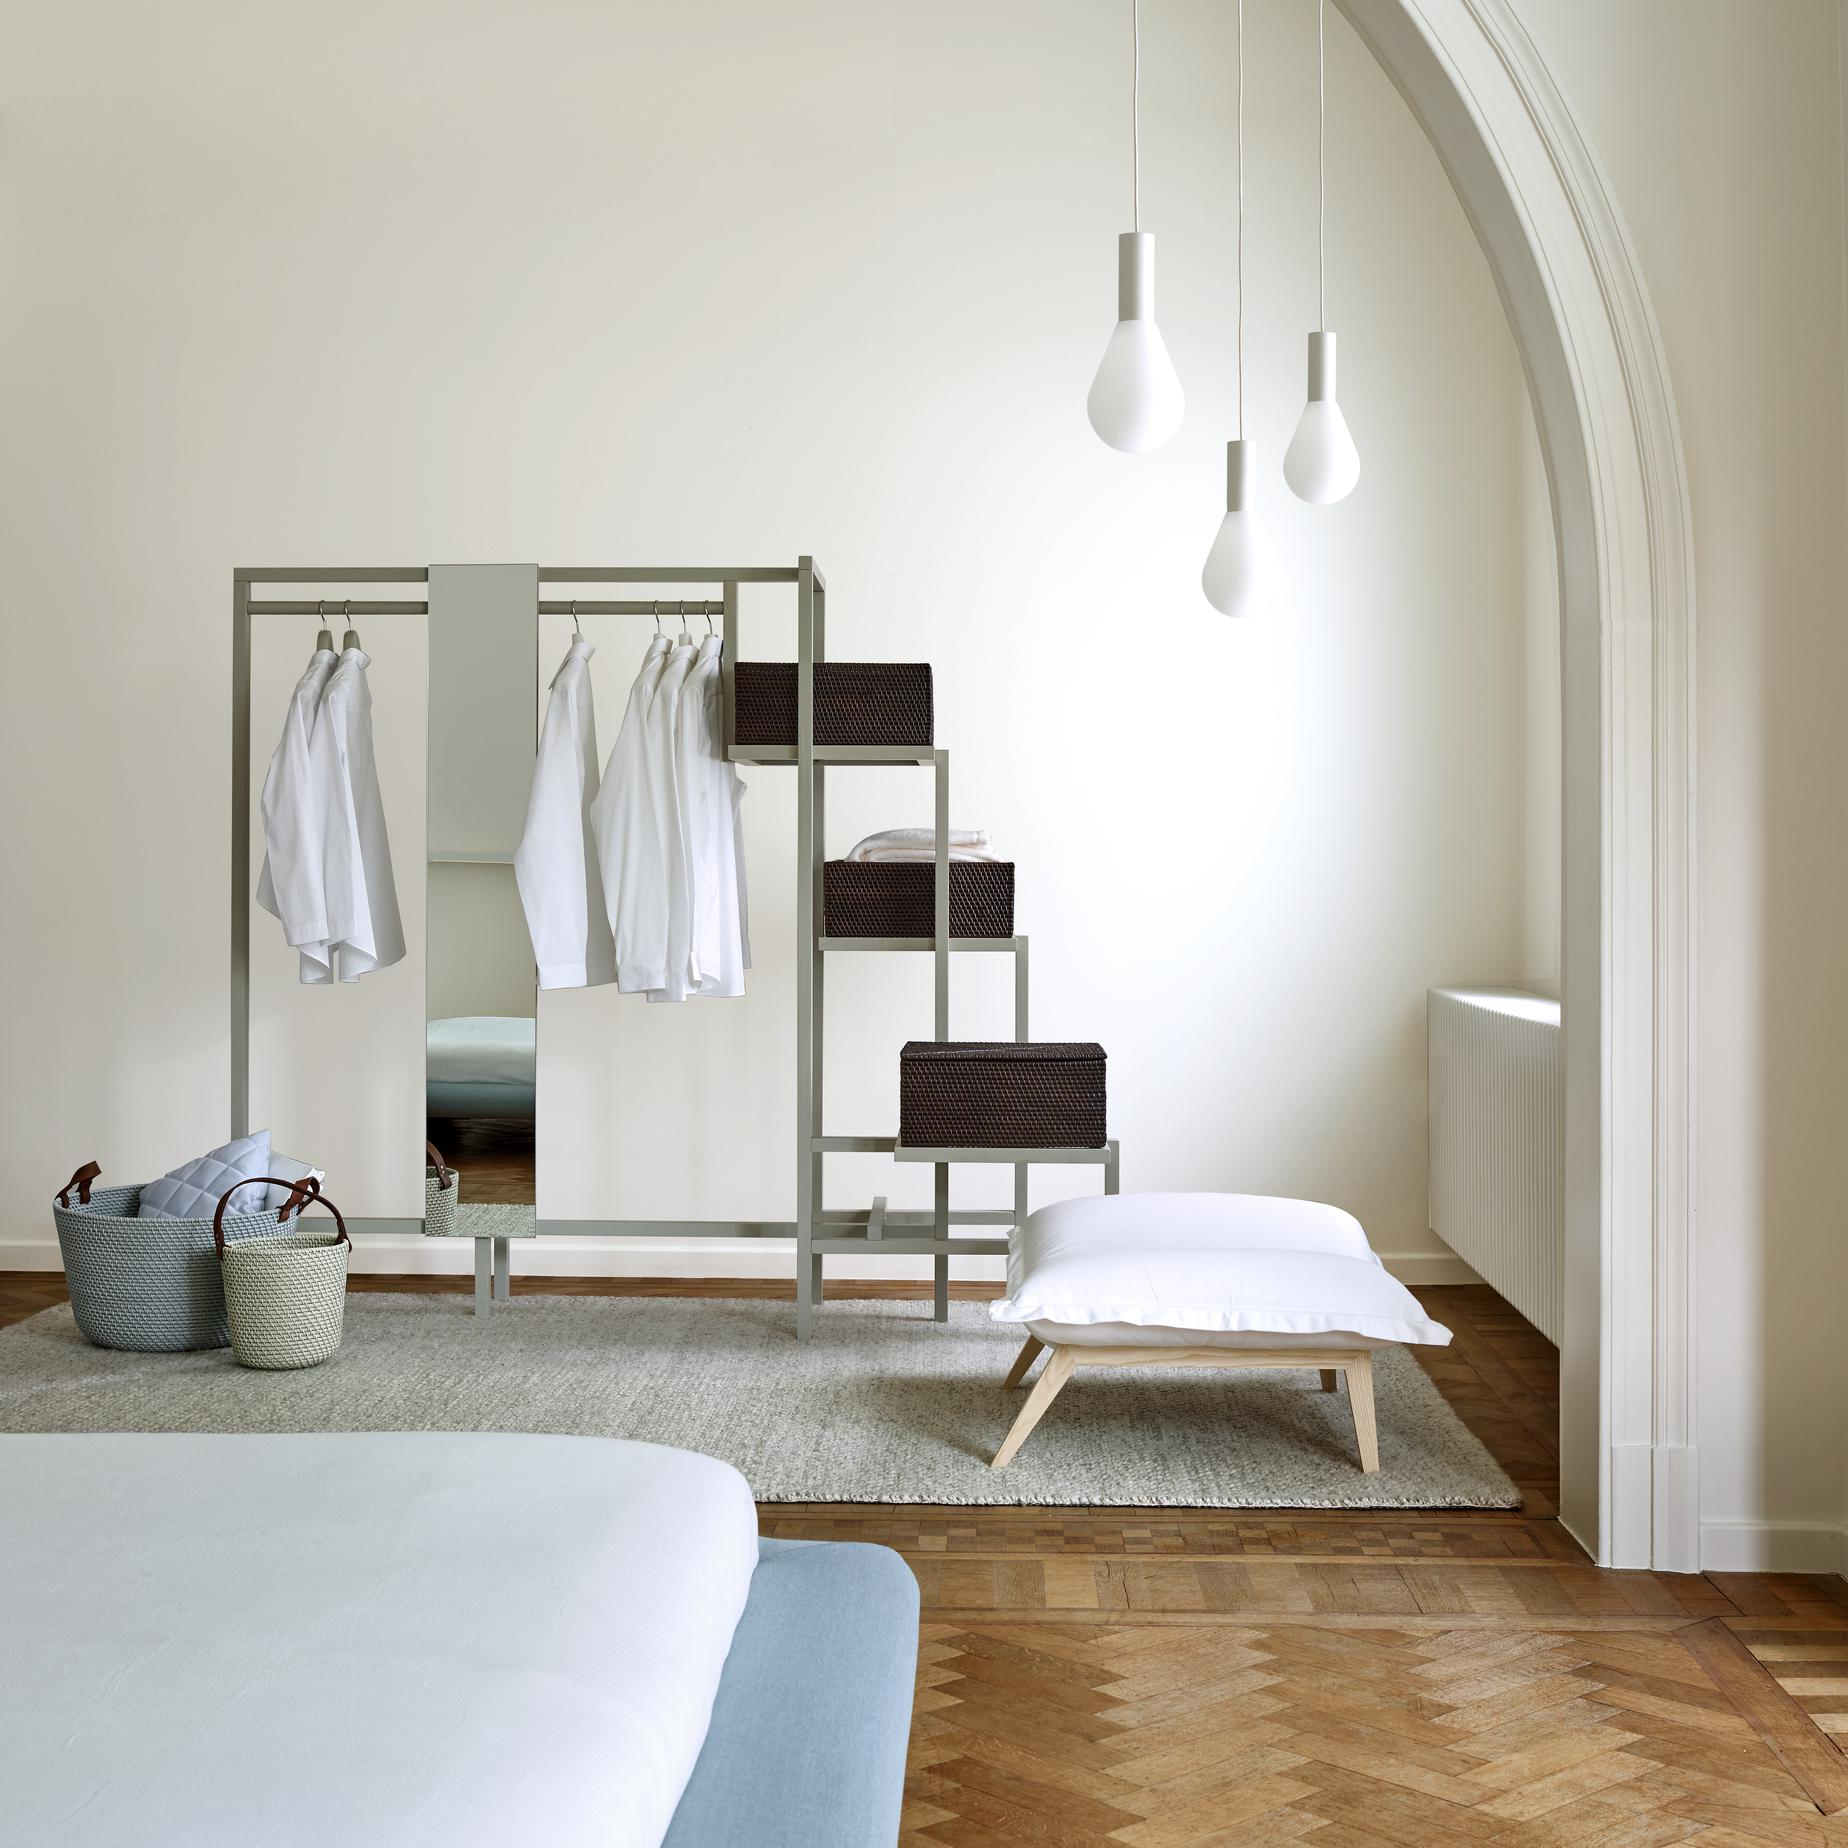 KORB: CLOTHES BOXES Ligne Roset